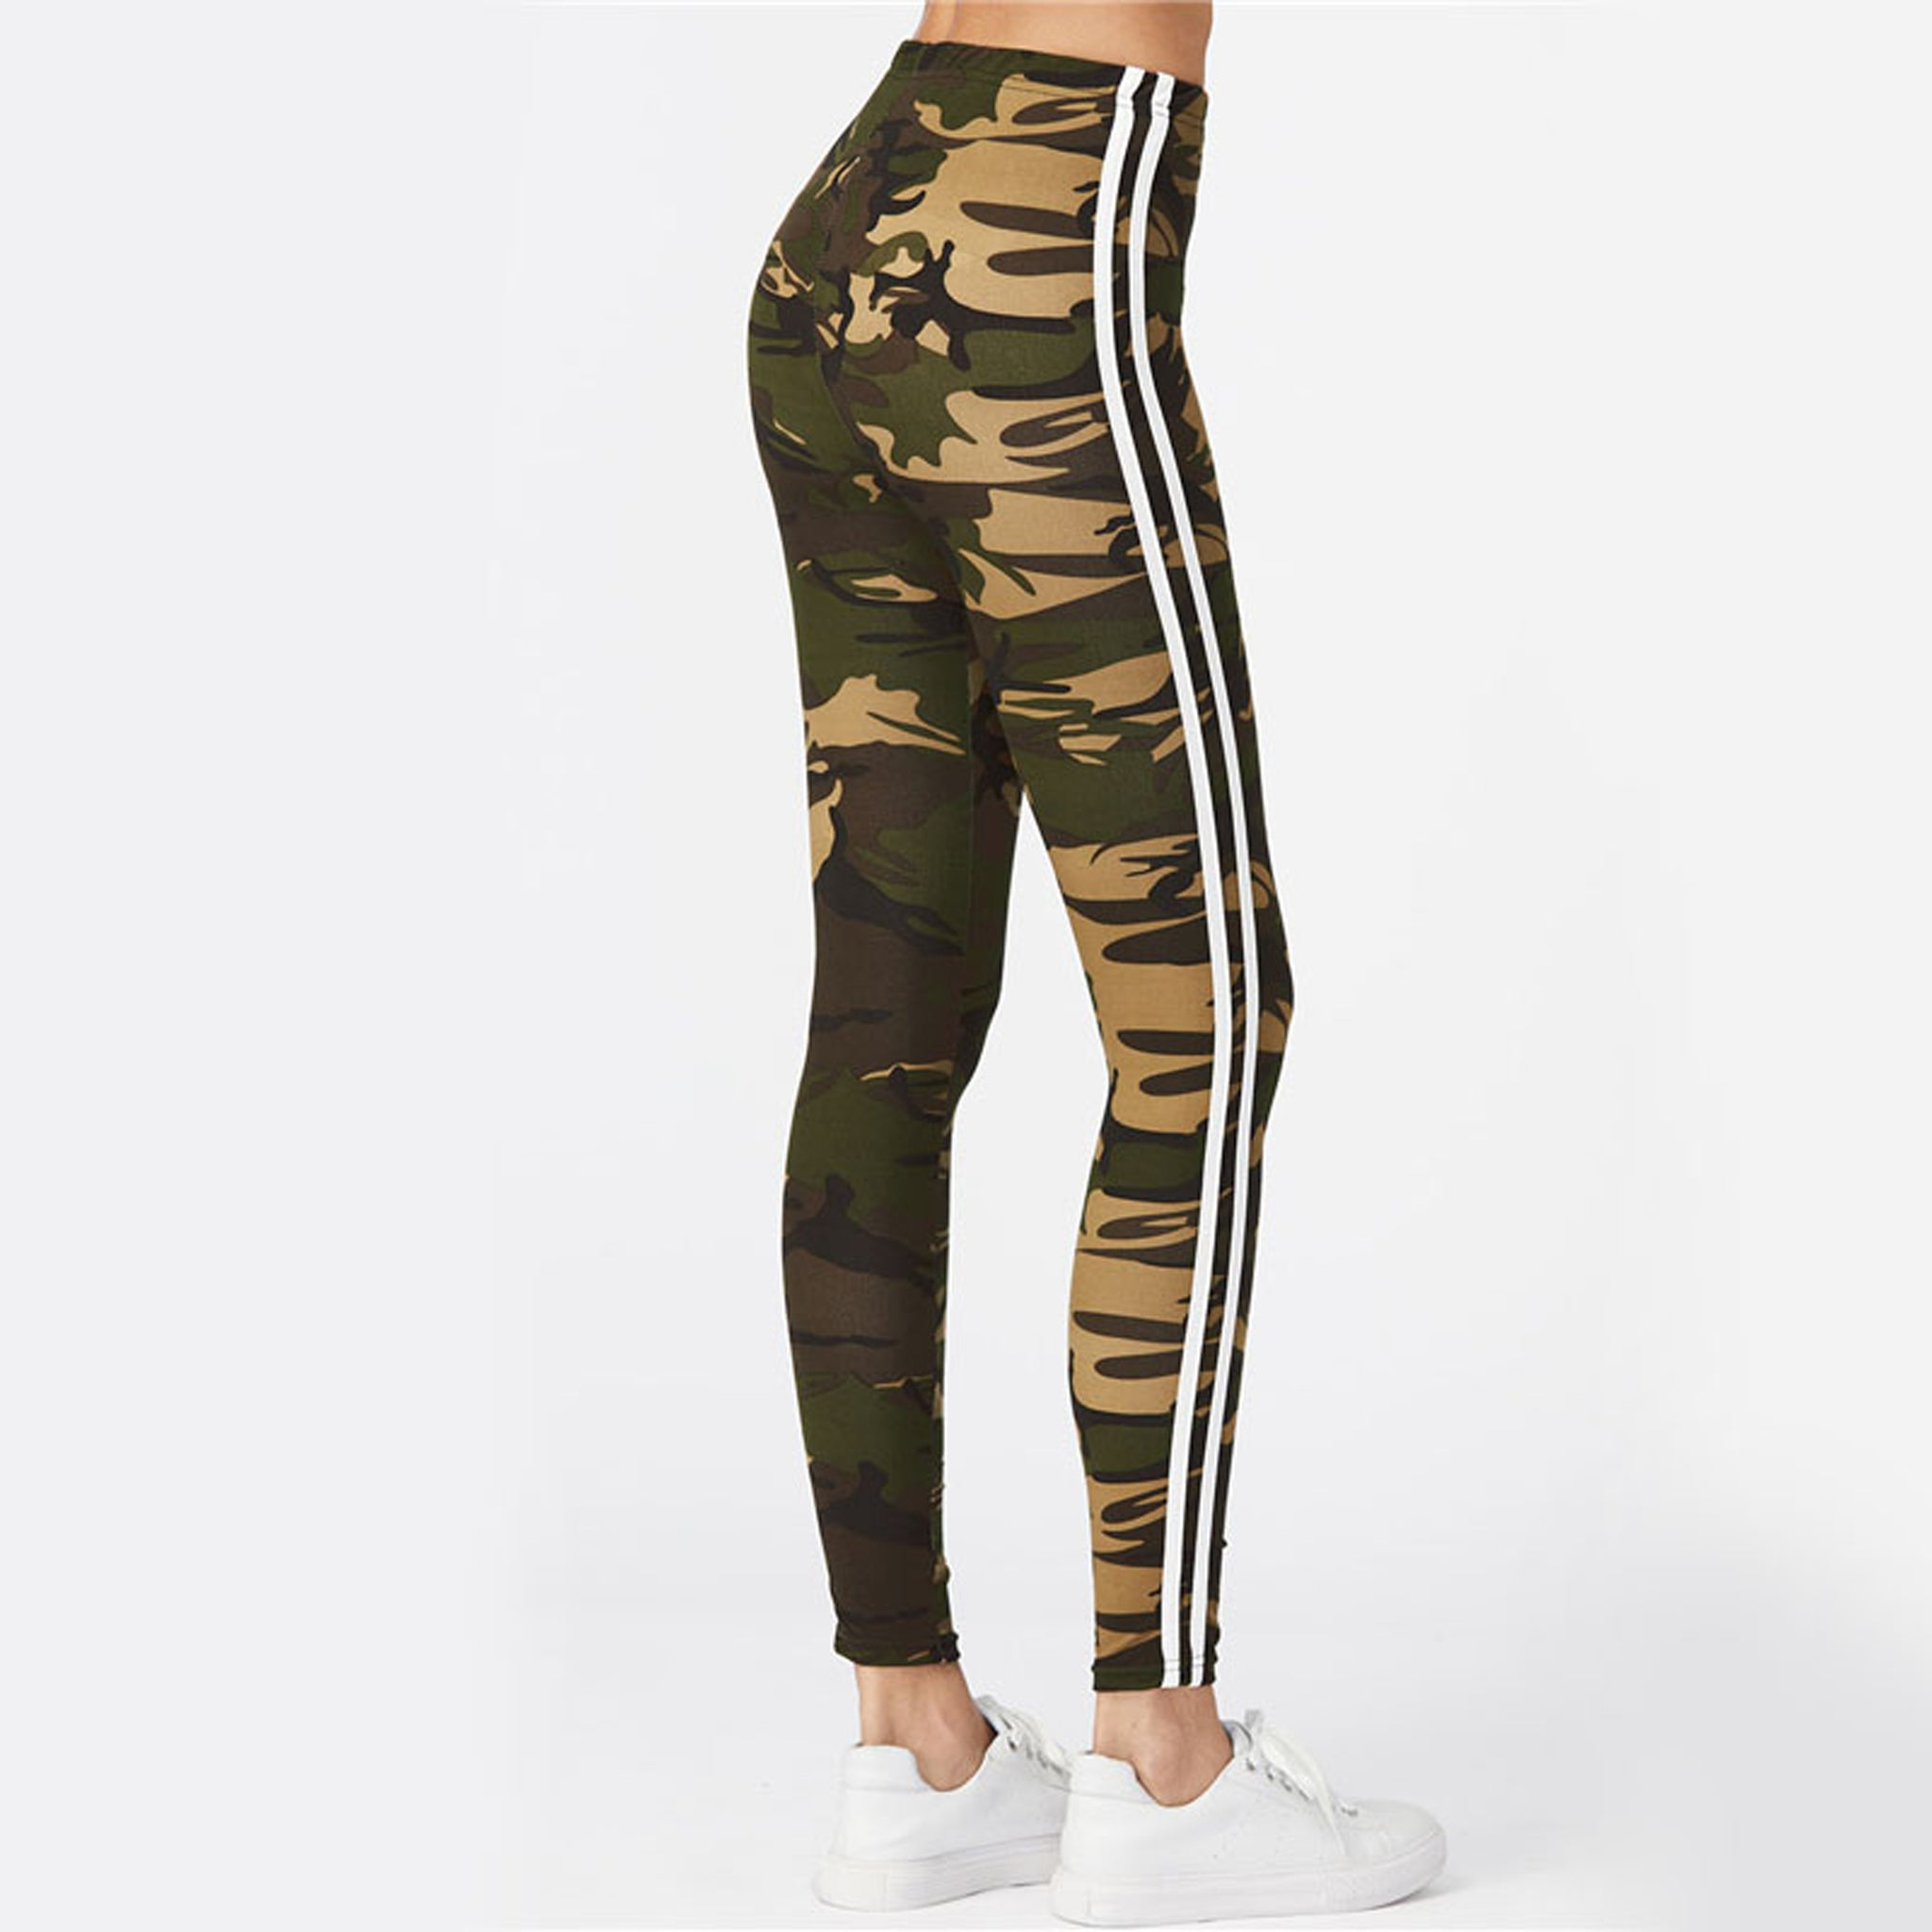 29f2b65965b8d3 Cute Summer Spring Workout Outfit Ideas for Women - Hot Baddie Printed Camo  Camouflage Leggings Double ...